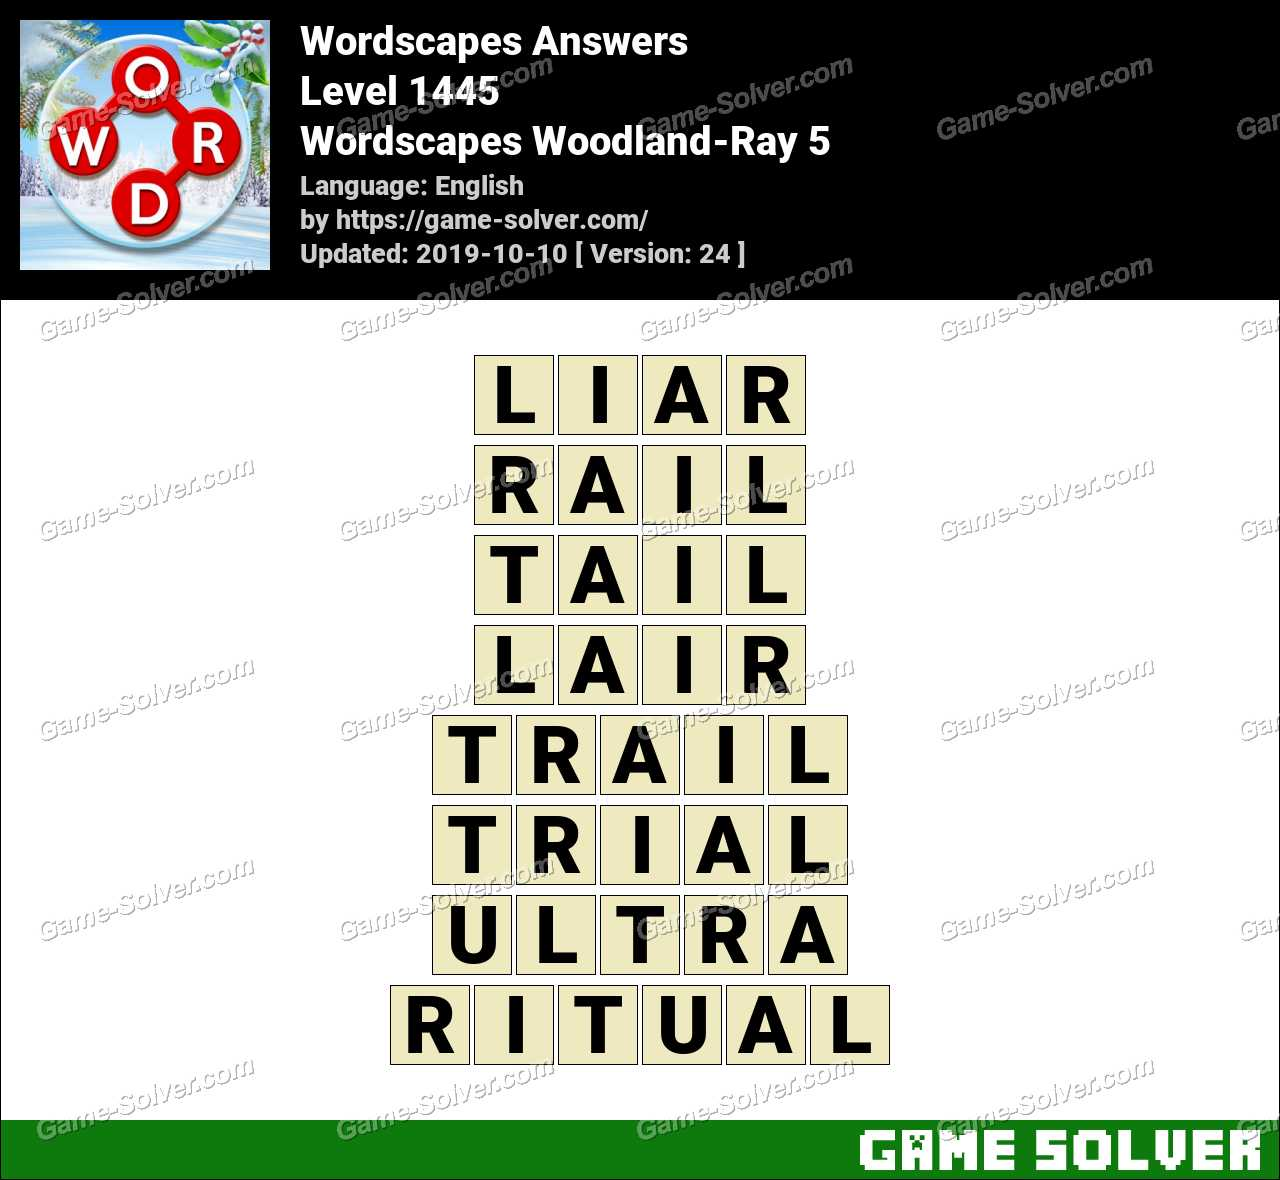 Wordscapes Woodland-Ray 5 Answers